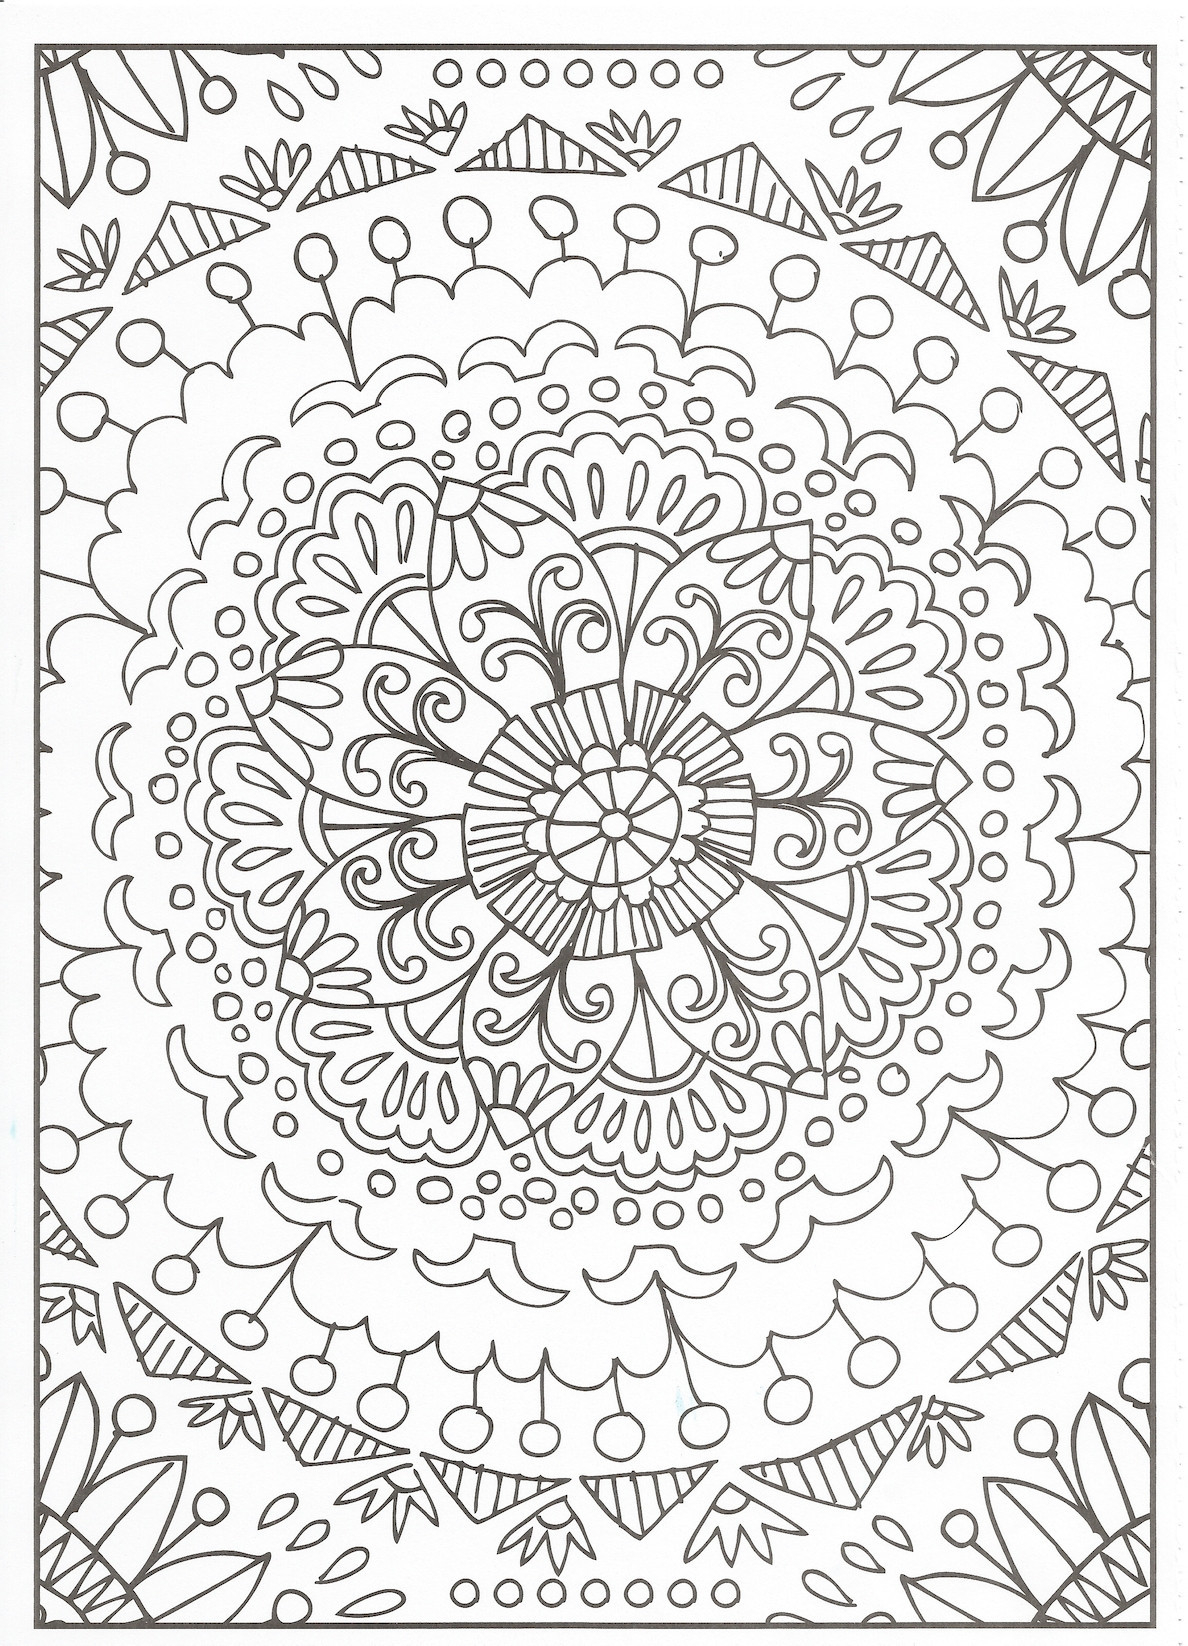 Chameleon Coloring Page Free Printable Dolphin Coloring Pages For Adults To Print Print Out